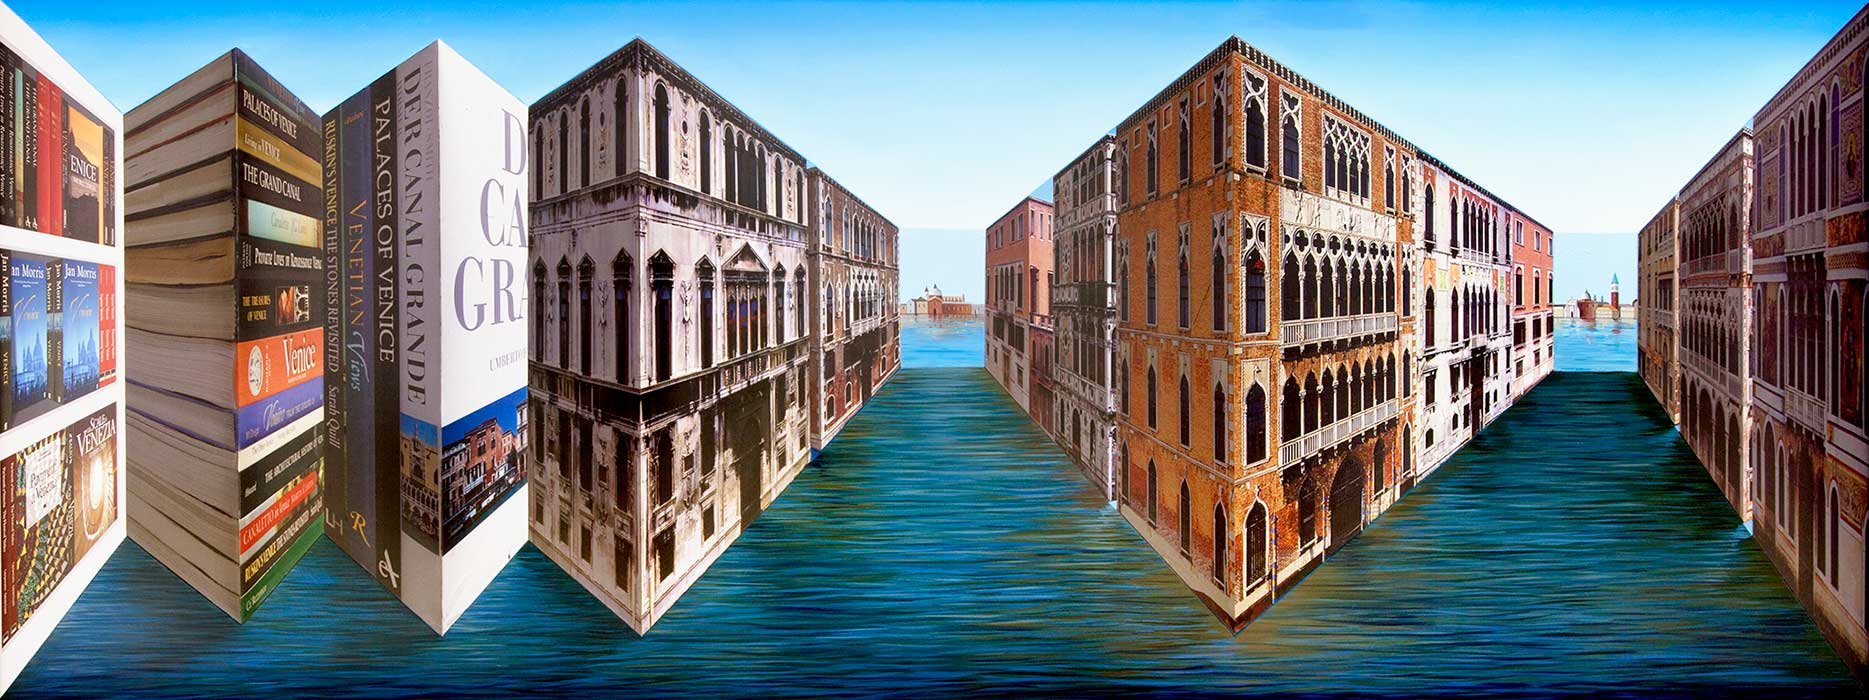 Books by Venice <p>2012 | Edition 5 | 81 X 192 X 28 cm / 32 x 75¾ x 11¼ in</p>